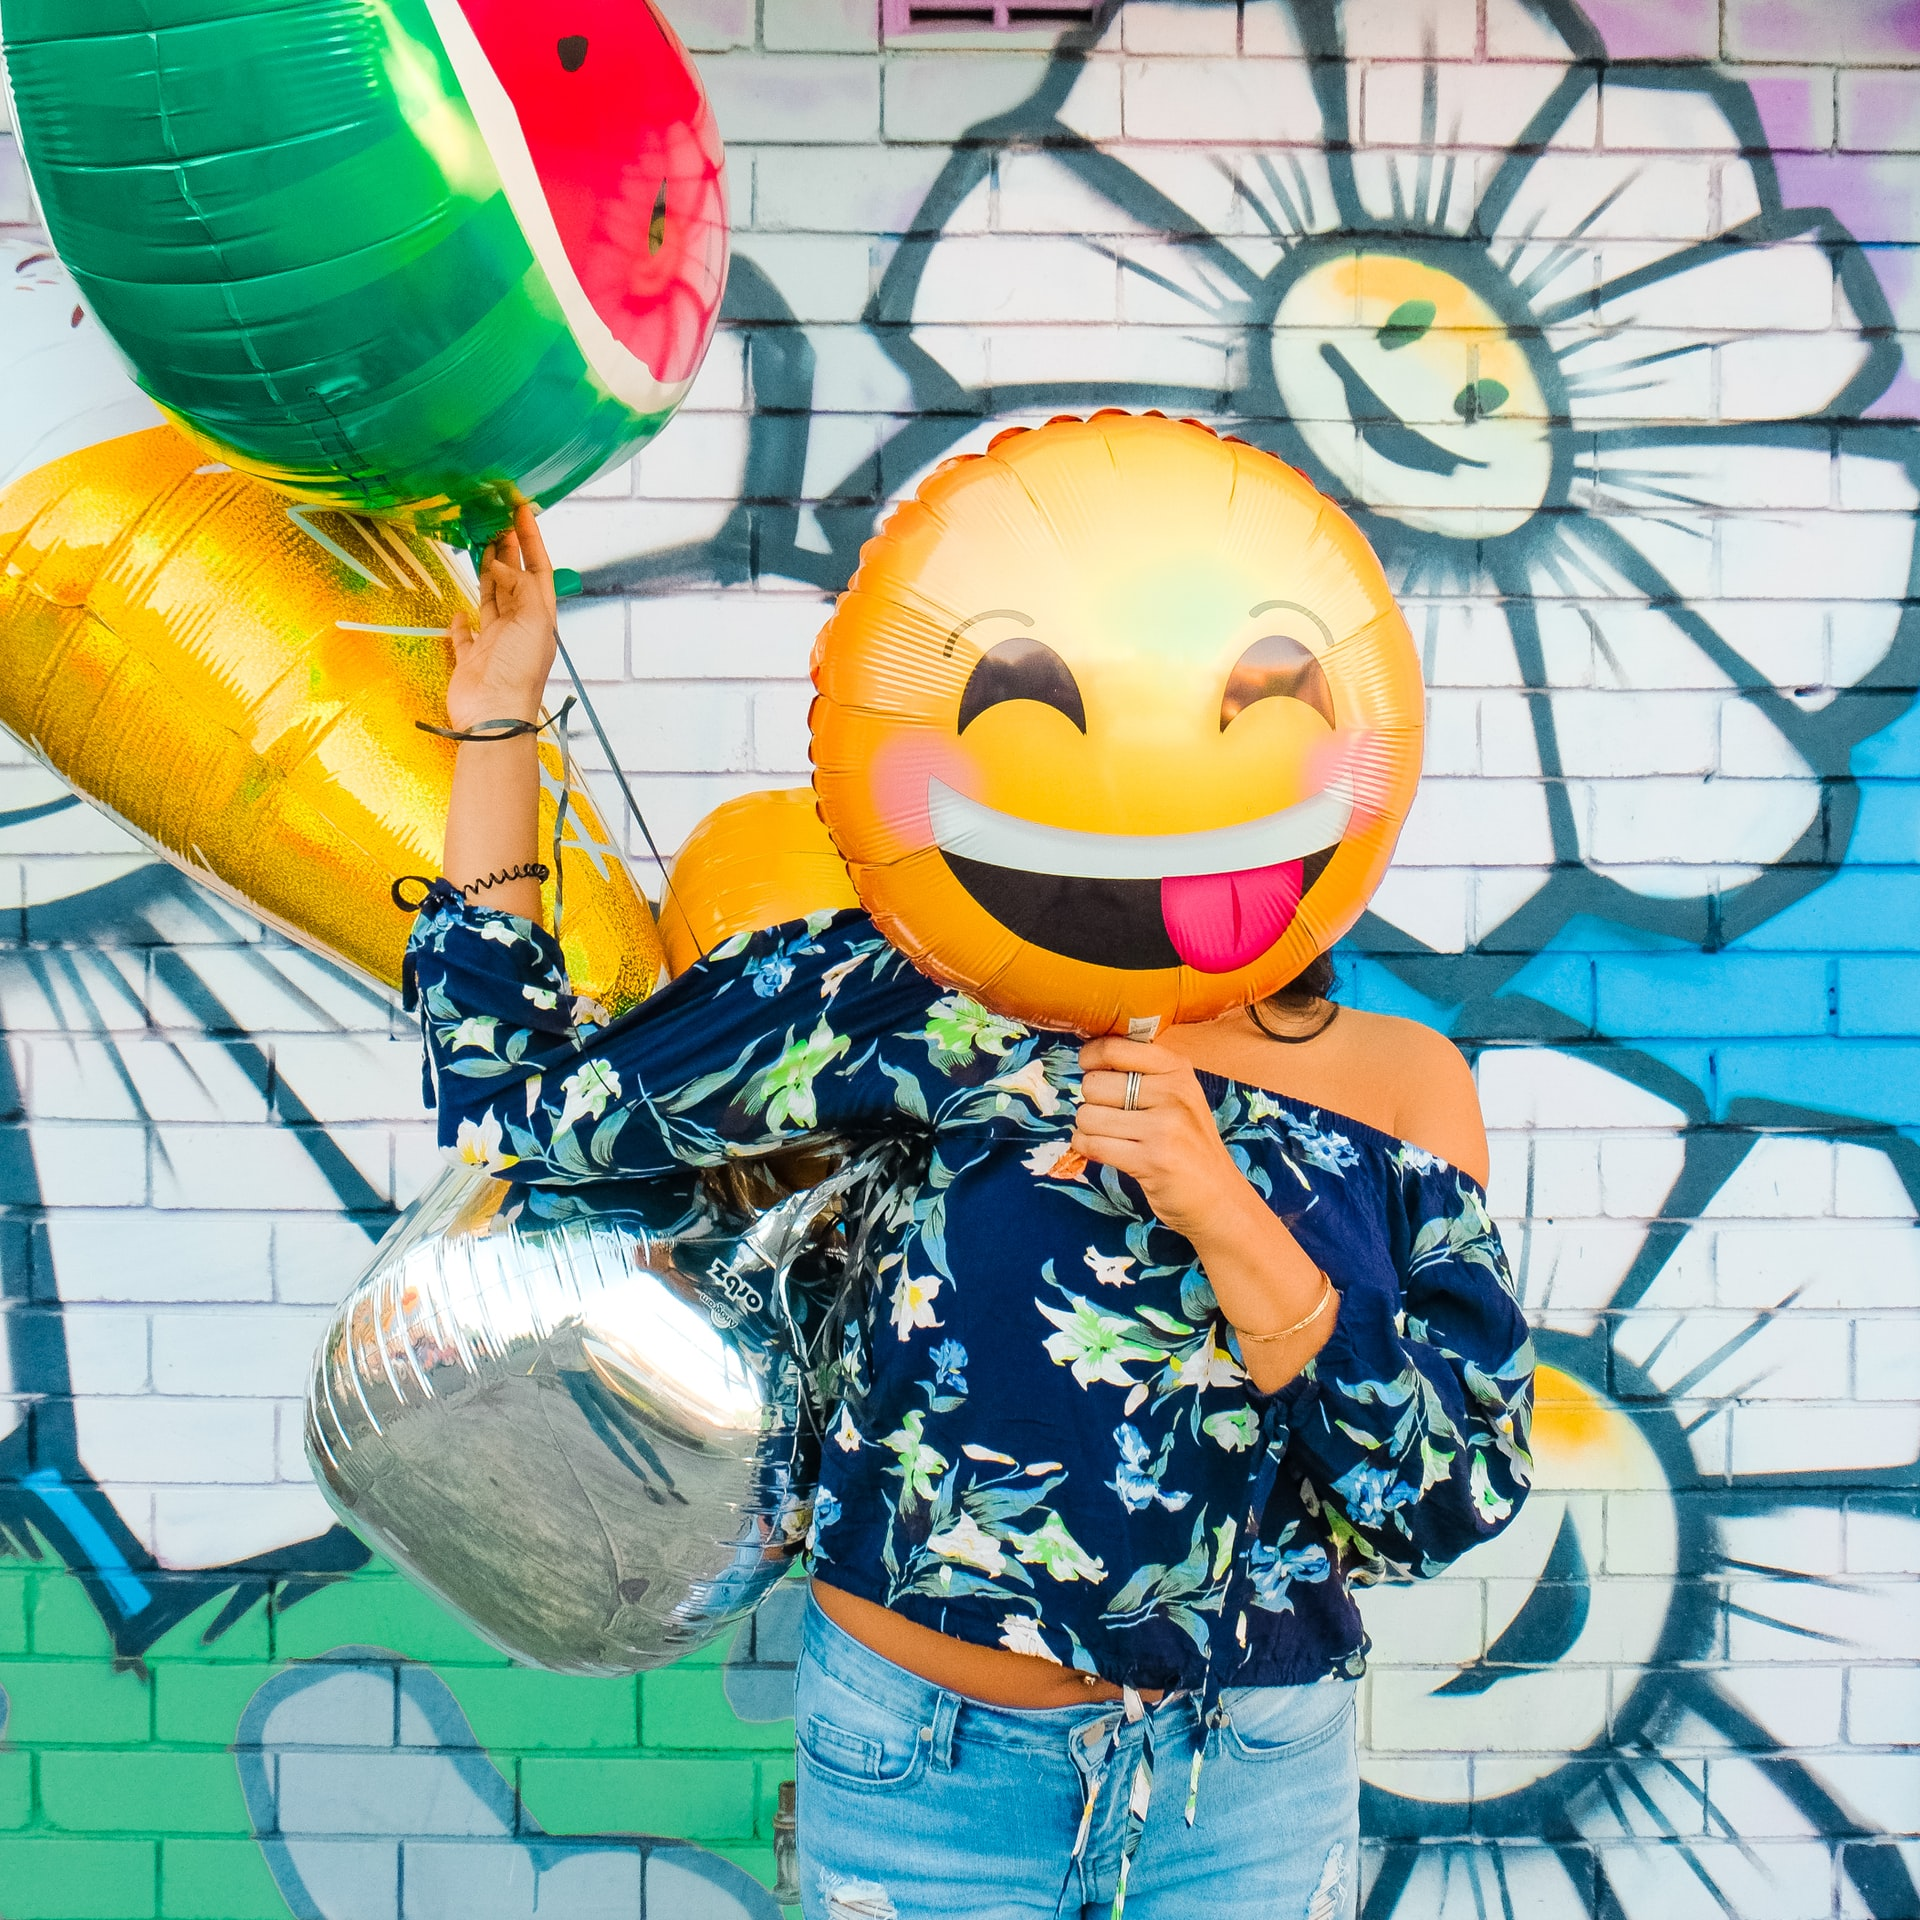 An image of someone holding balloons in their outstretched right hand. Their left hand holds a yellow smiley face balloon in front of their face